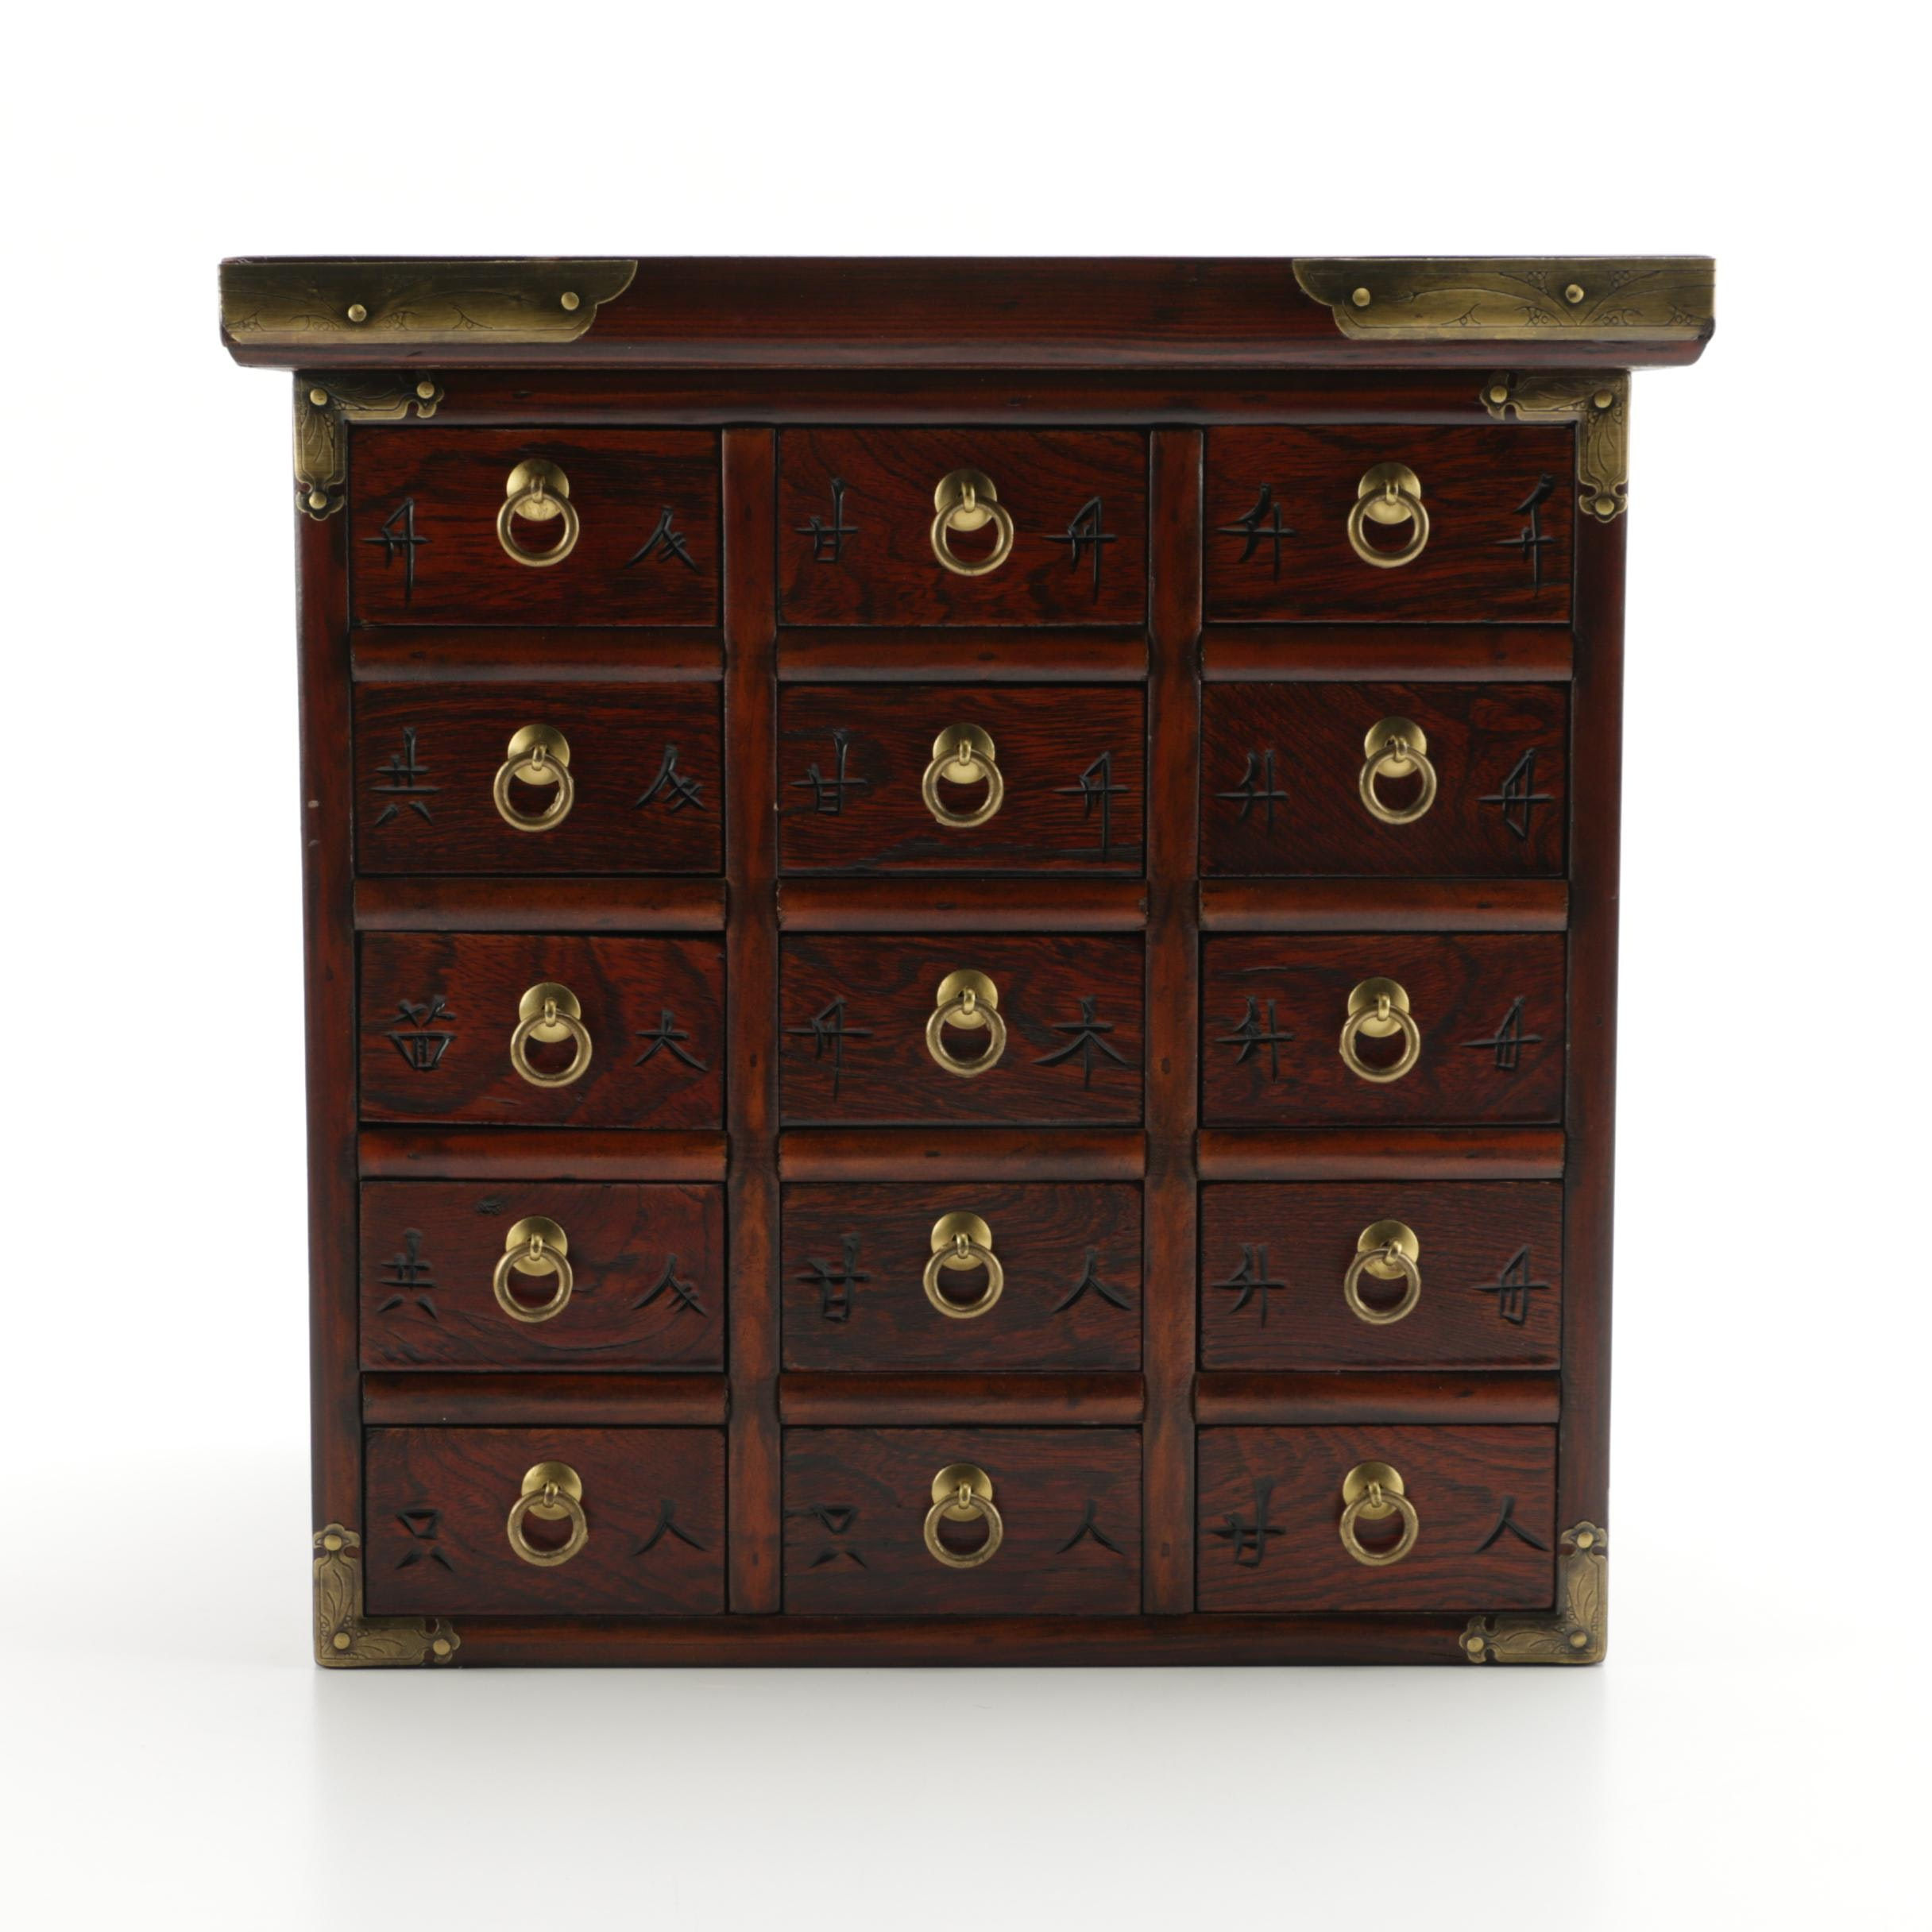 Asian Style Wooden Apothecary Chest